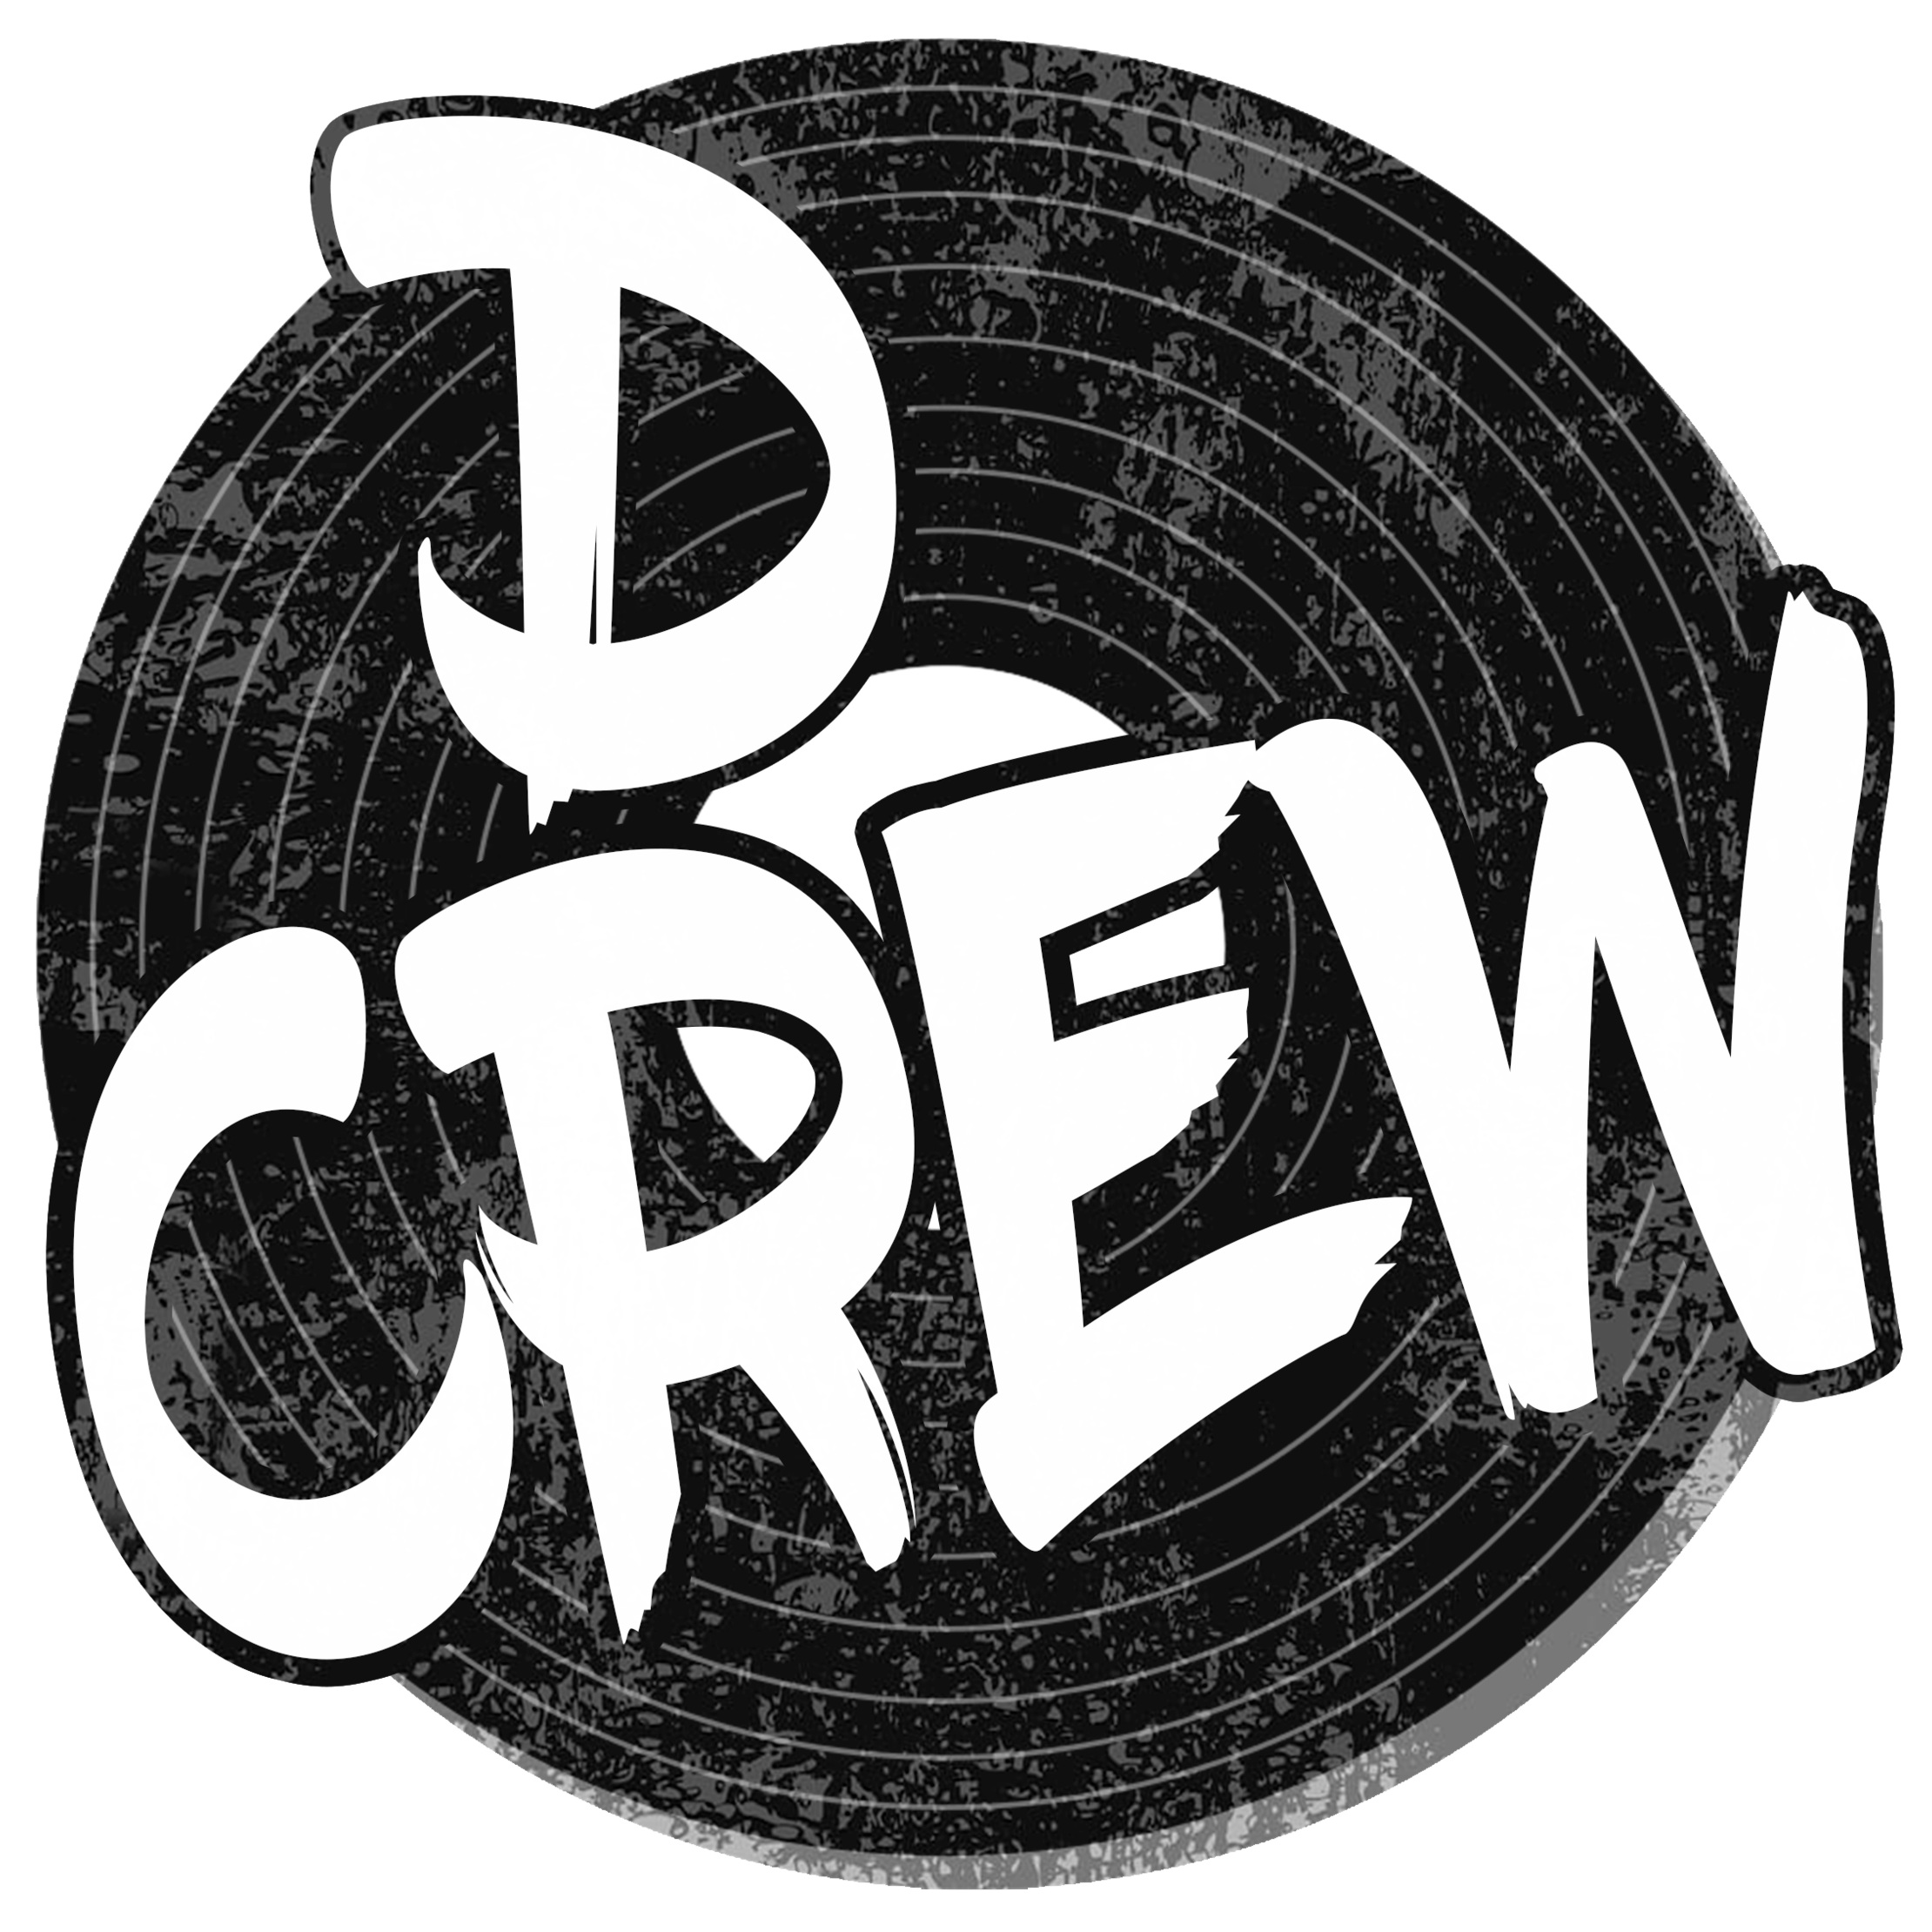 D Crew - Our dance crew is an amazing way we get to share our testimony of Jesus Christ. As a team, men and women have an opportunity to share their talents and passion for ministering through dance.